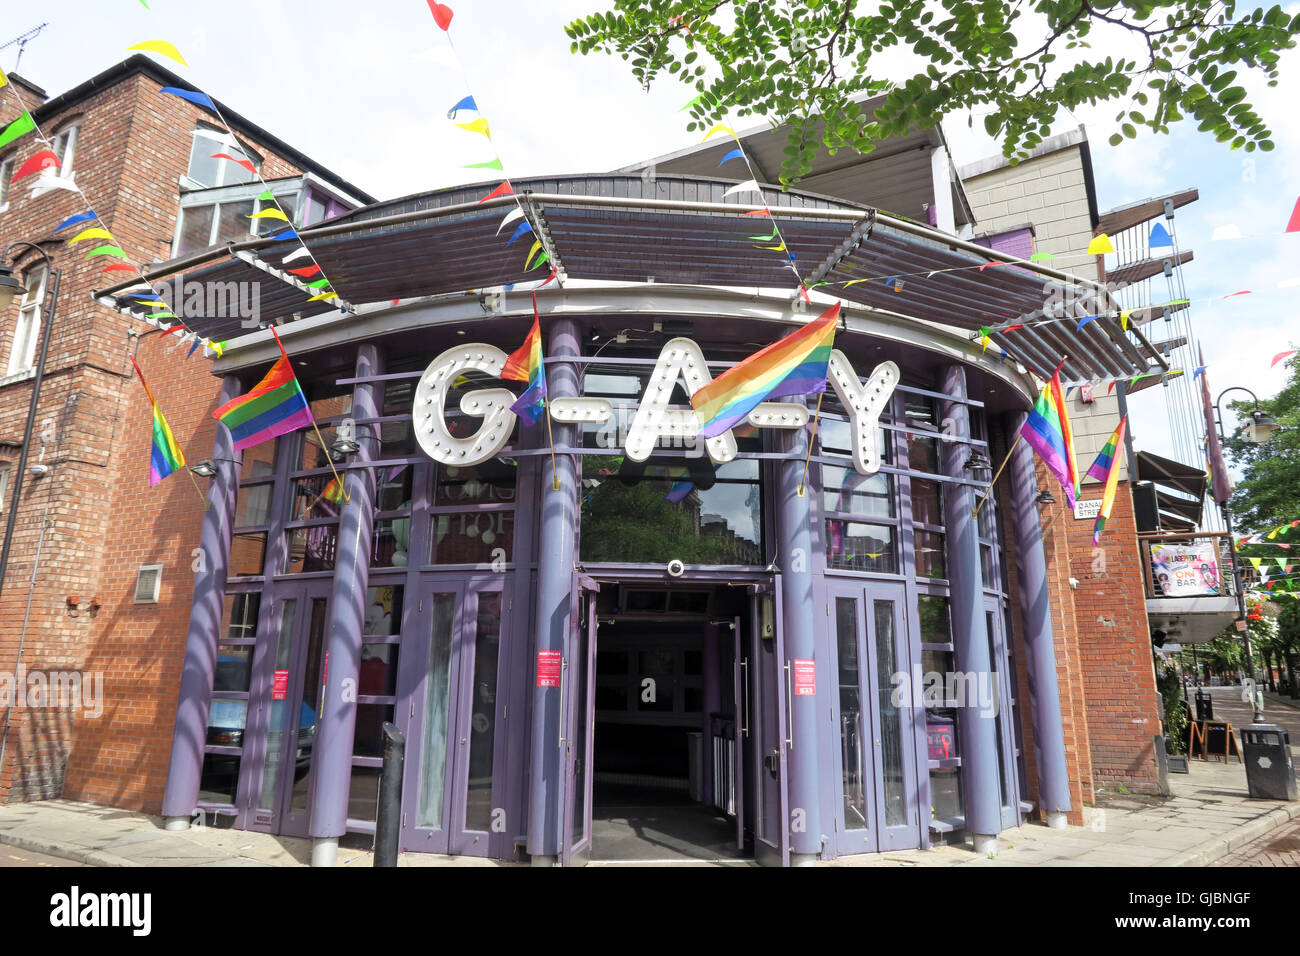 Manchester Gay Village, Canal street, Manchester, North West England, UK, M1 3HE - Stock Image